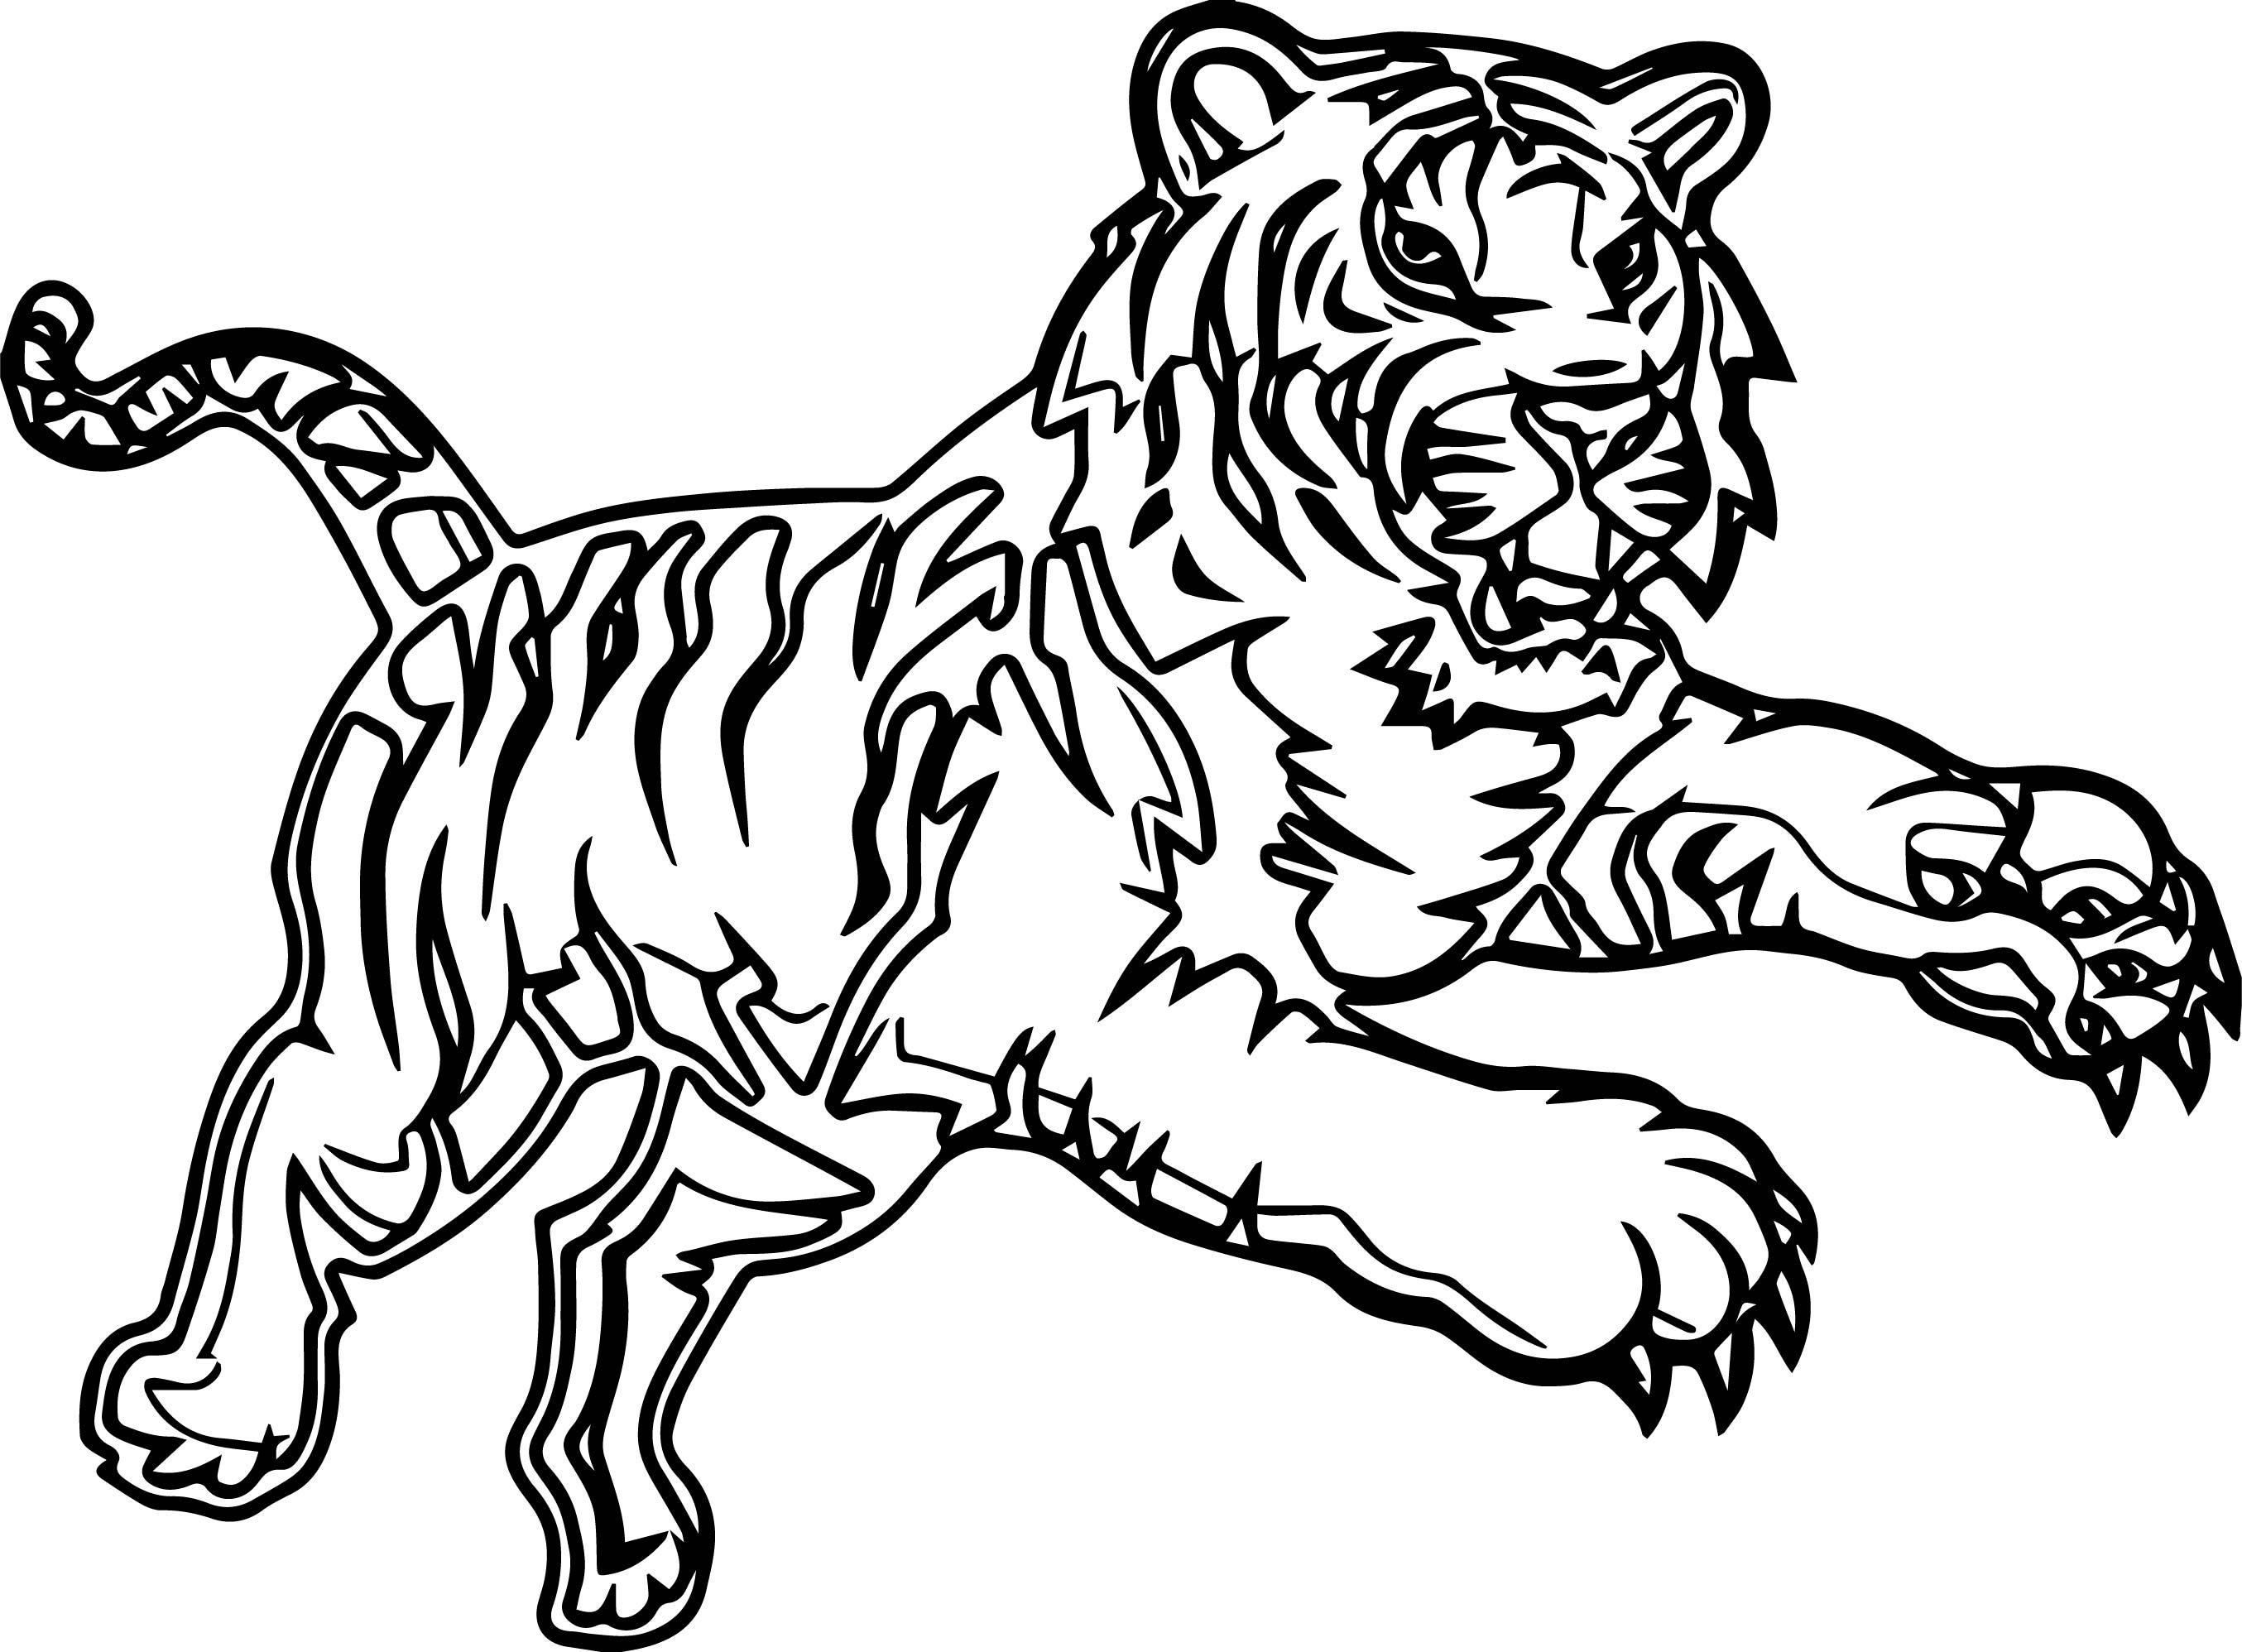 Awesome Attack Time Tiger Coloring Page Coloring Pages Coloring Pages For Teenagers Easy Coloring Pages